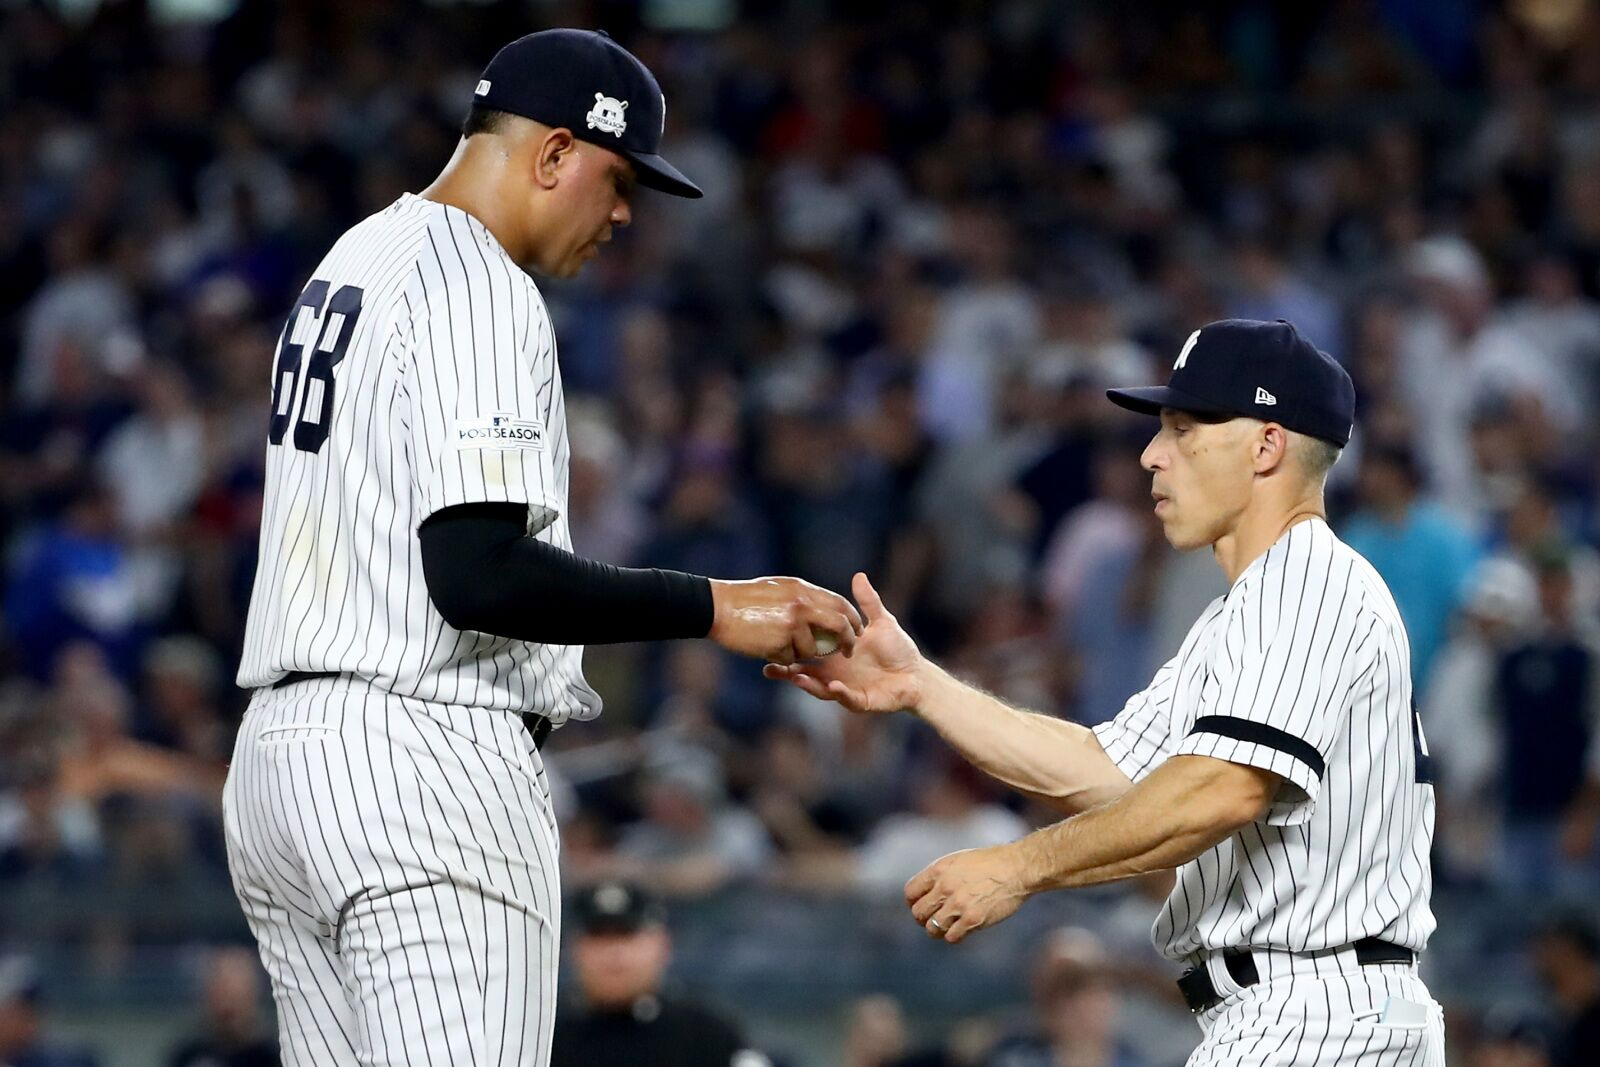 Yankees could lose Austin Romine and Dellin Betances to the Phillies and Joe Girardi